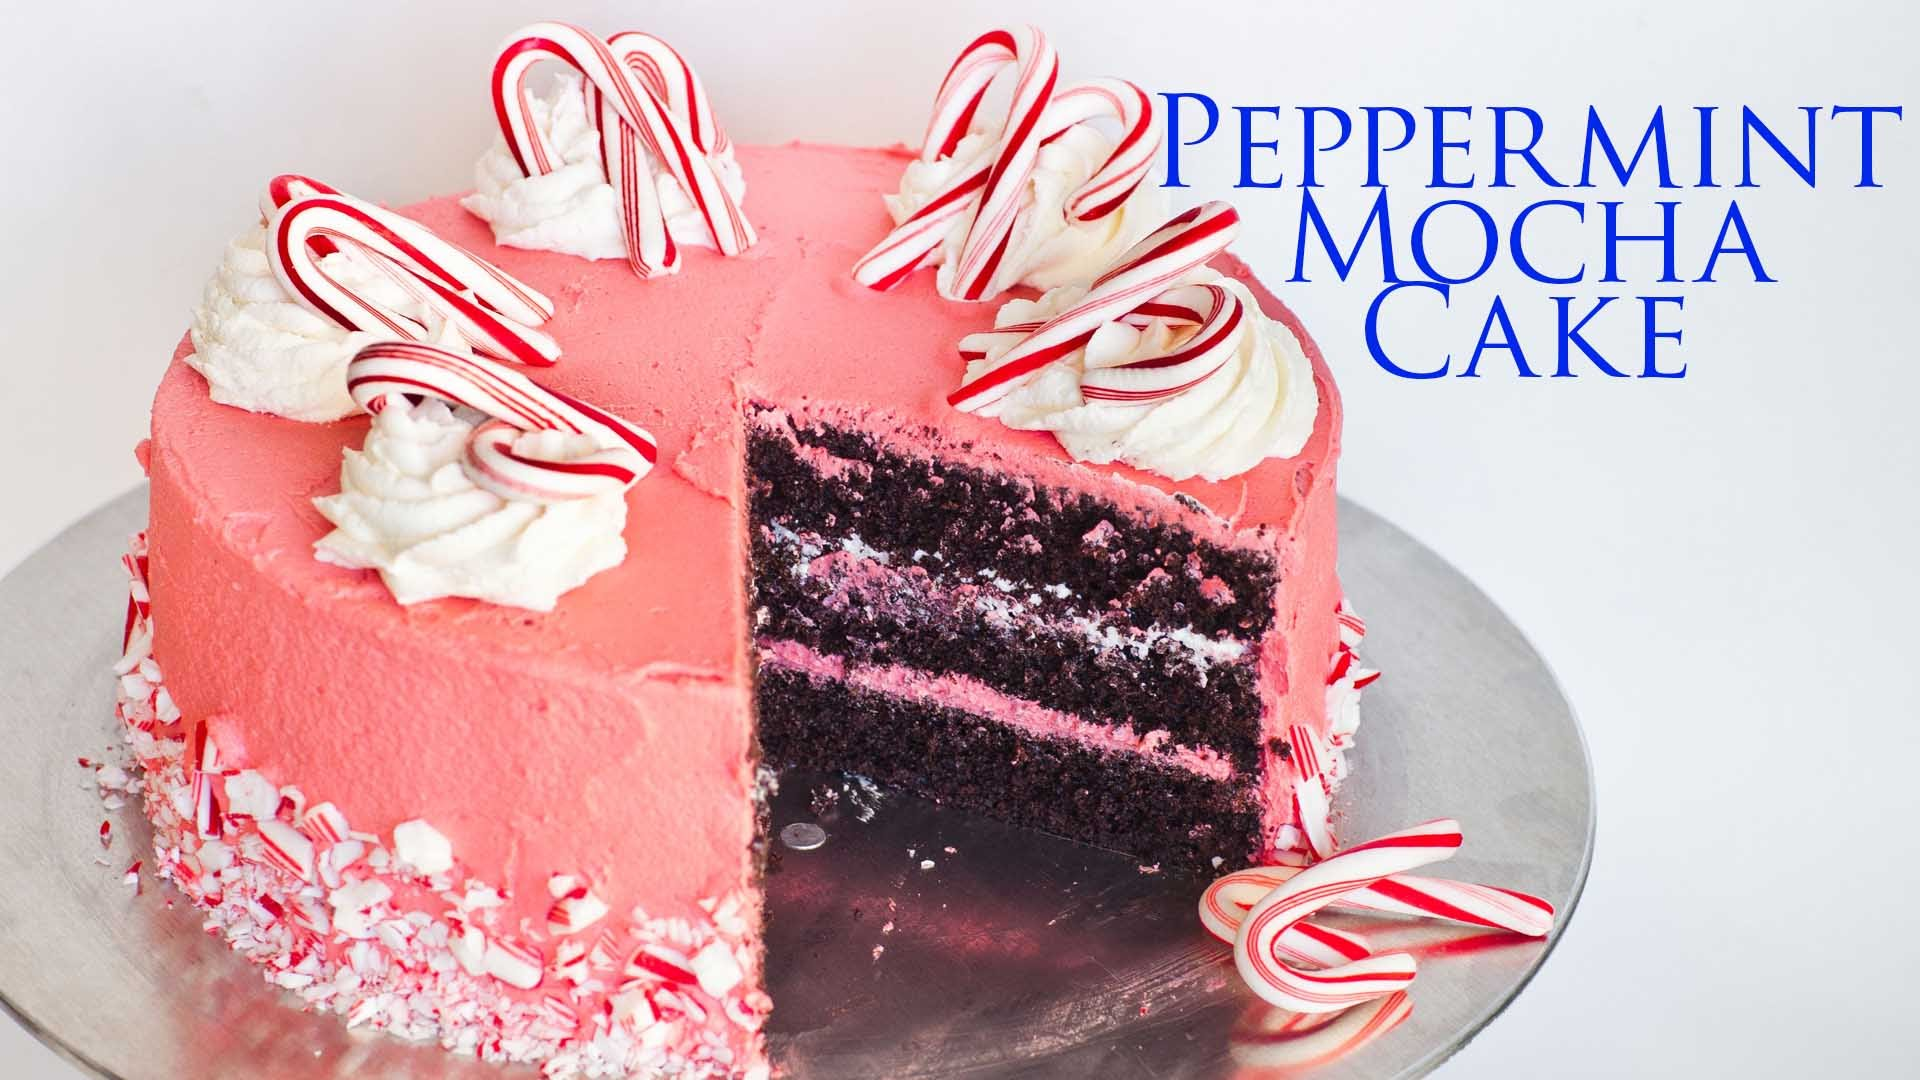 Besides Its Beauty Find Out What Special Ingredient Makes This Peppermint Mocha Cake Unbelievable